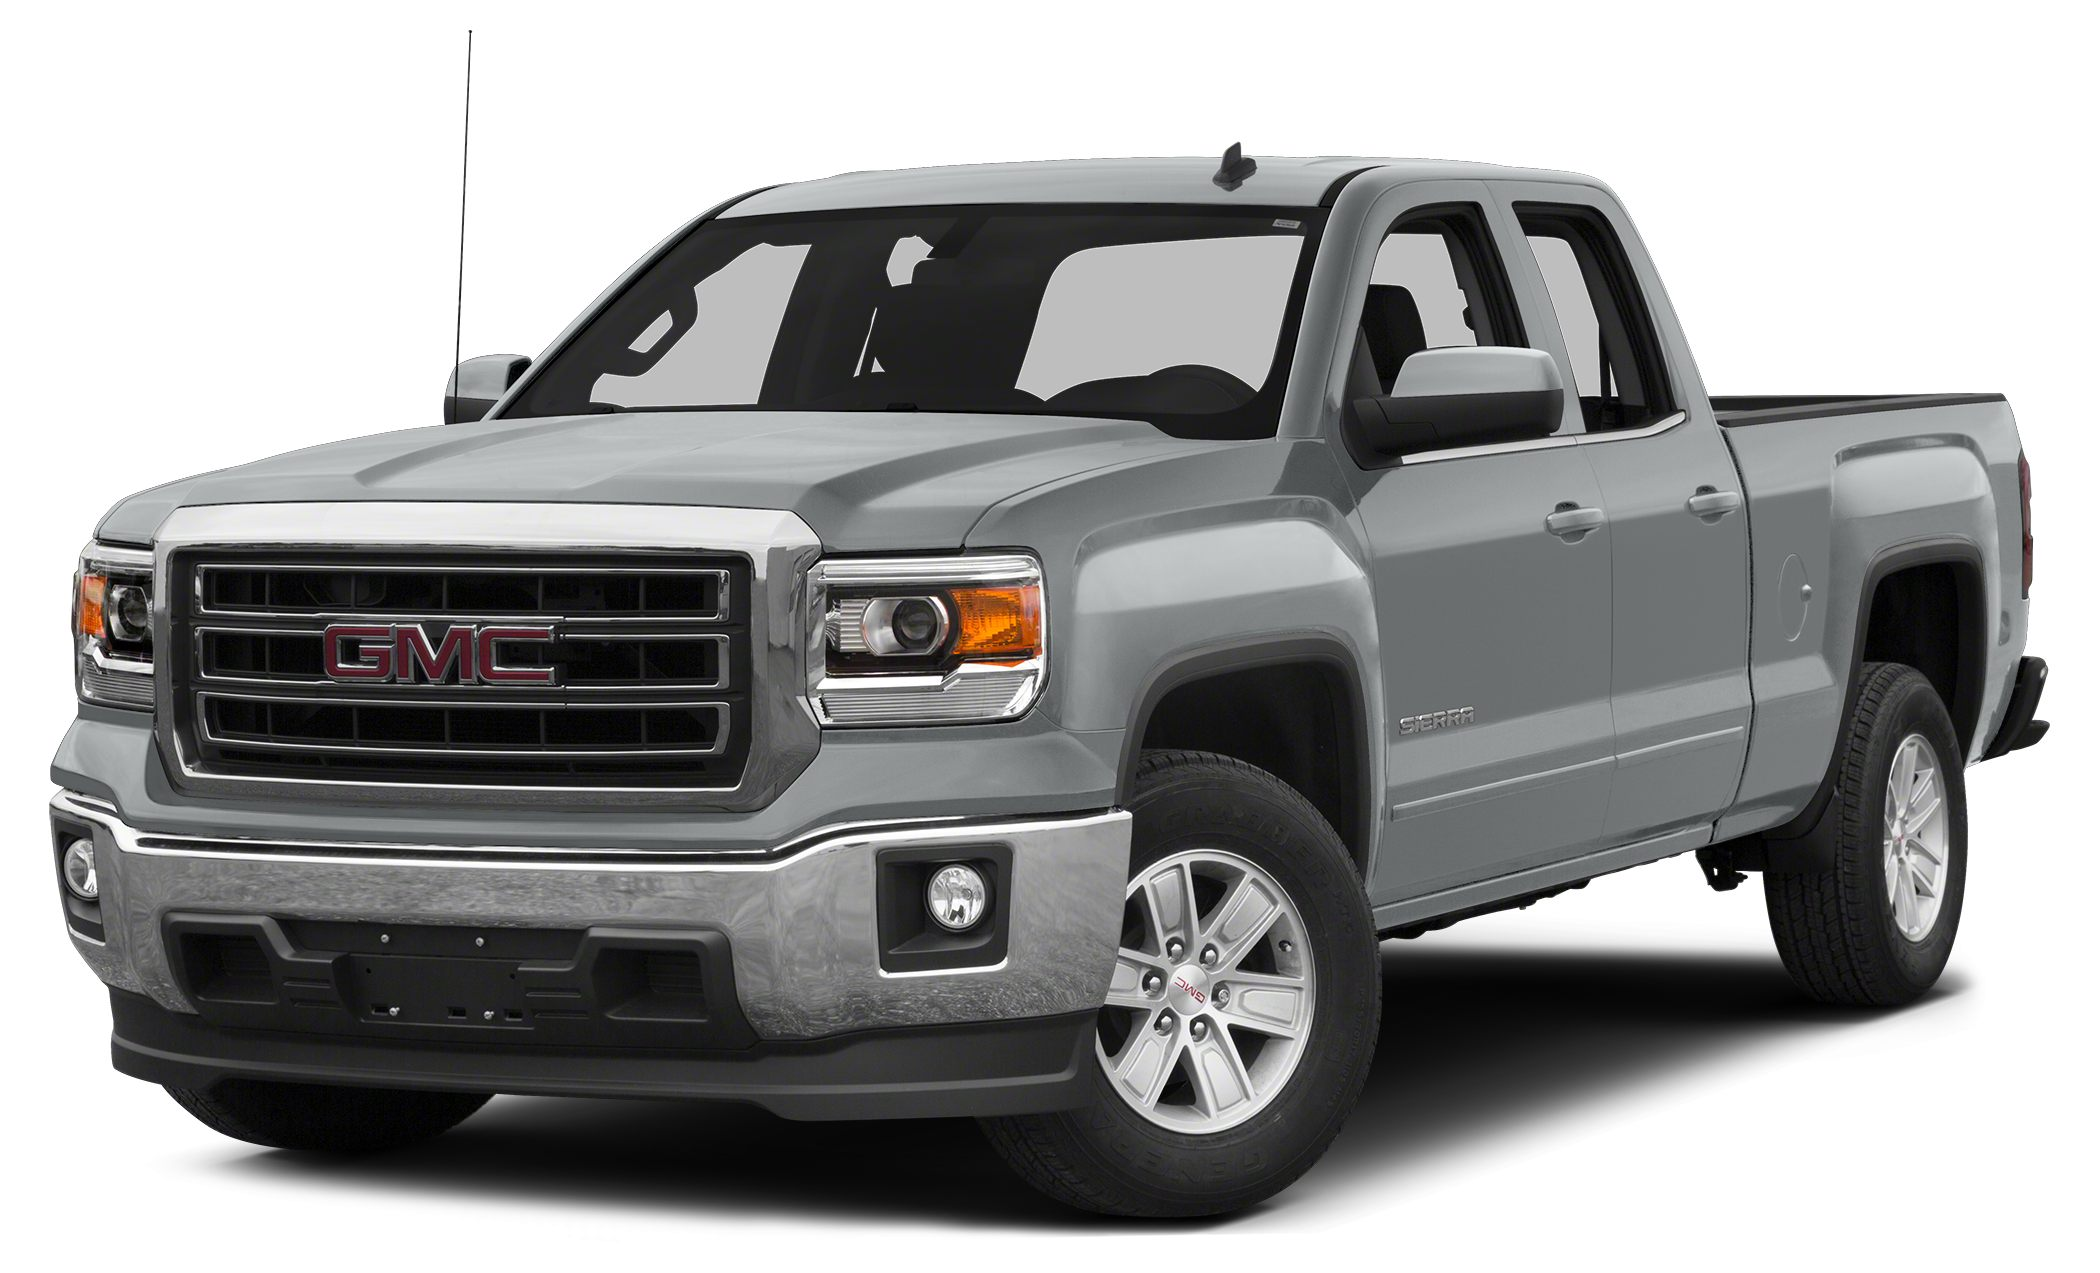 2014 GMC Sierra 1500 SLT Land a steal on this 2014 GMC Sierra 1500 SLT while we have it Comfortab